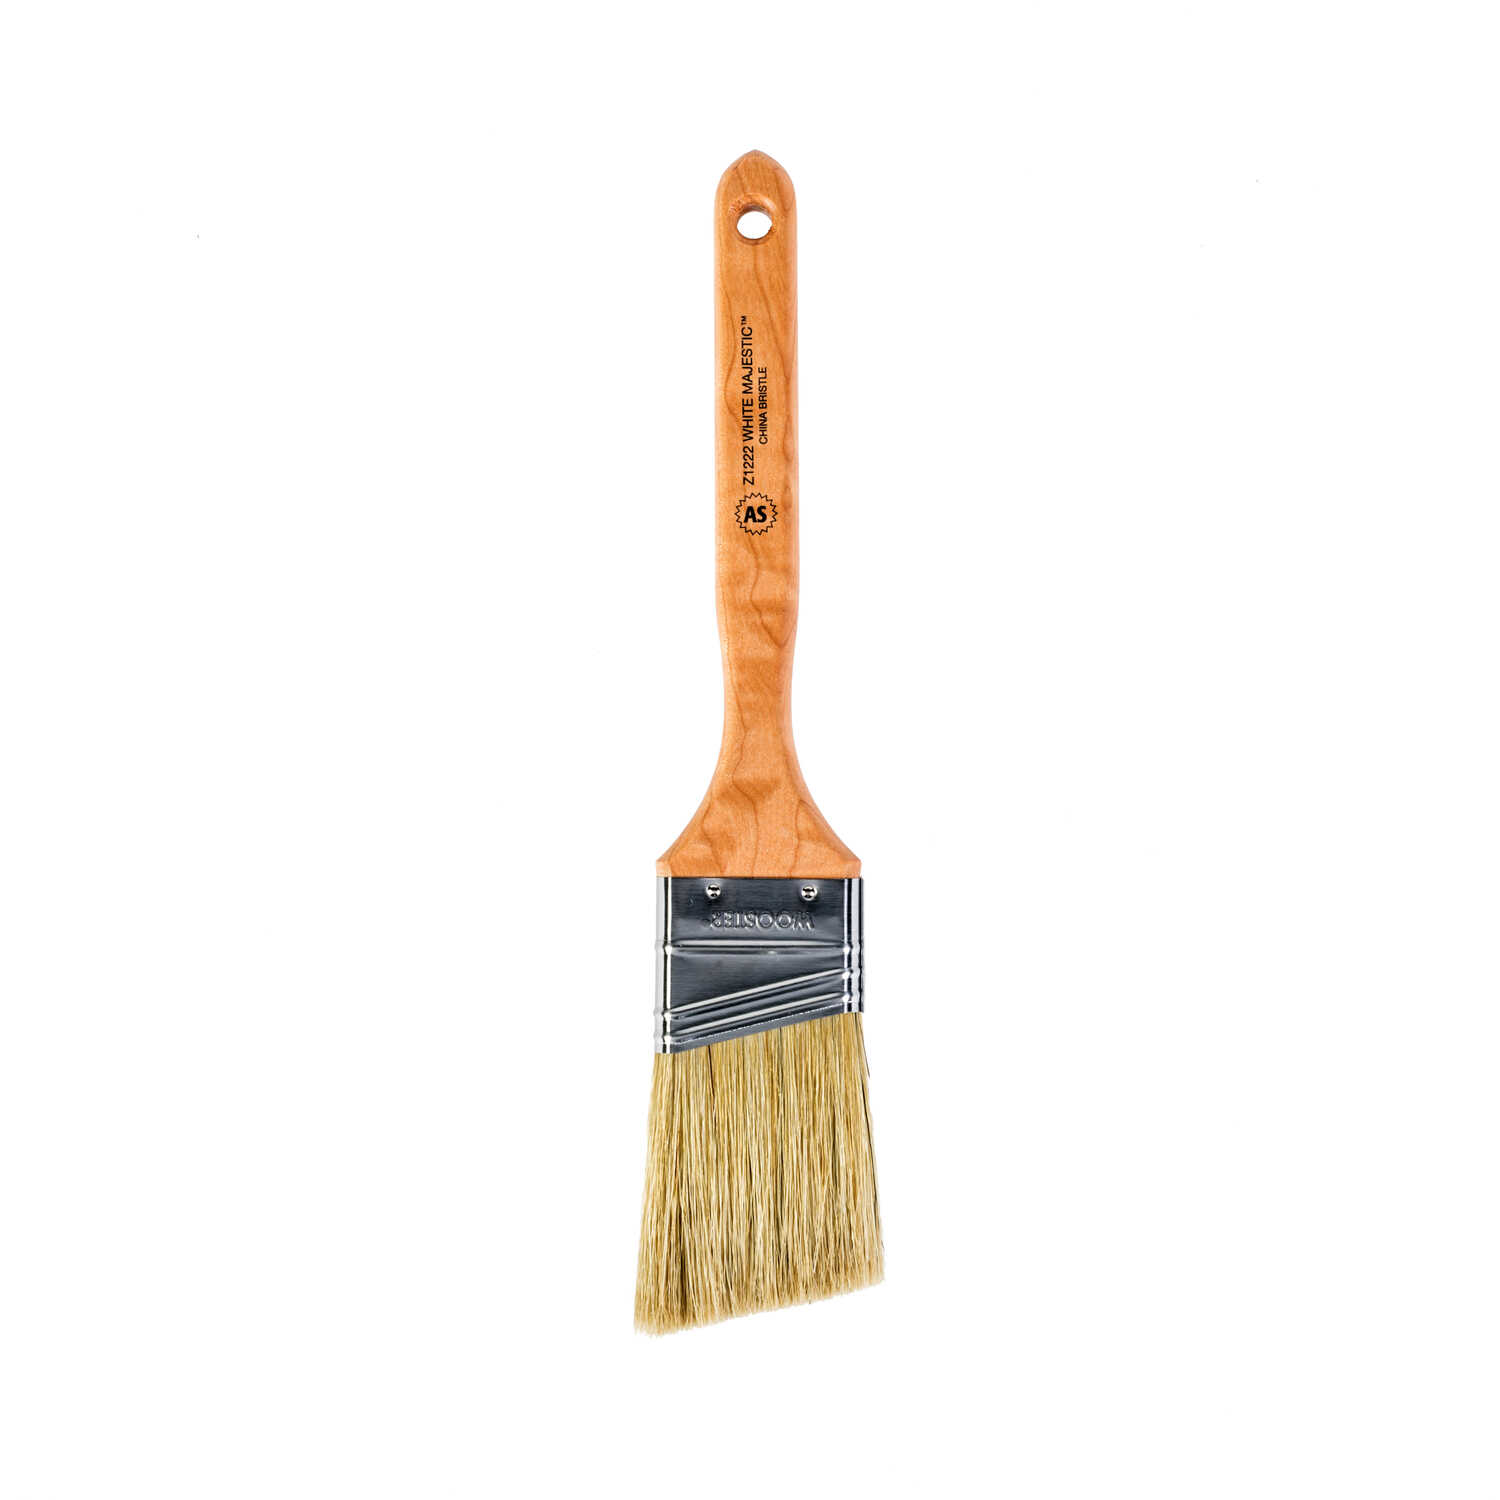 Wooster  Majestic  2 in. W Chiseled  Paint Brush